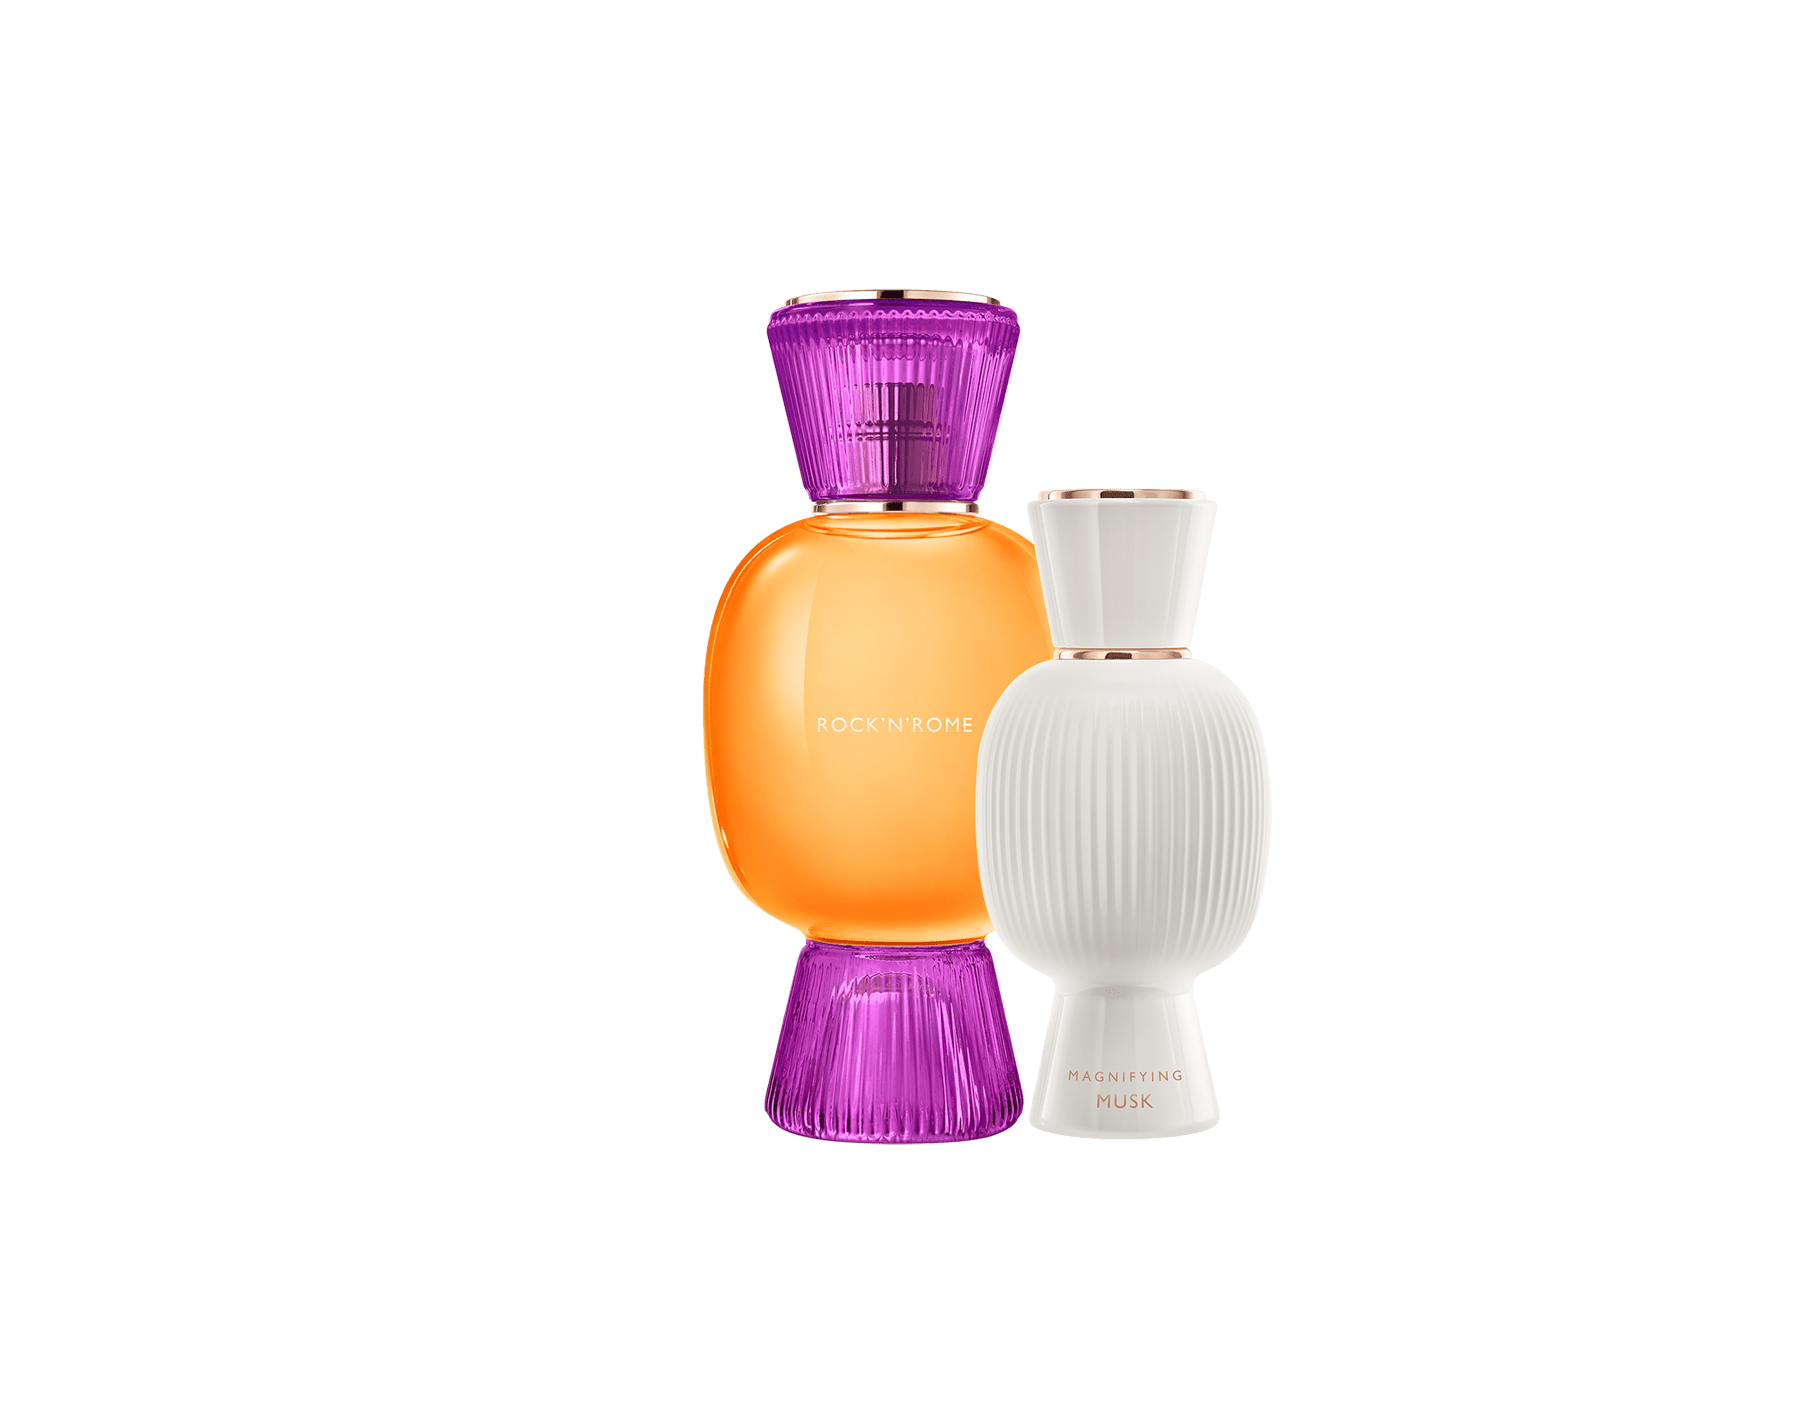 An exclusive perfume set, as bold and unique as you. The liquorous floriental Rock'n'Rome Allegra Eau de Parfum blends with the warm touch of the Magnifying Musk Essence, creating an irresistible personalised women's perfume. Perfume-Set-Rock-n-Rome-Eau-de-Parfum-and-Musk-Magnifying image 1